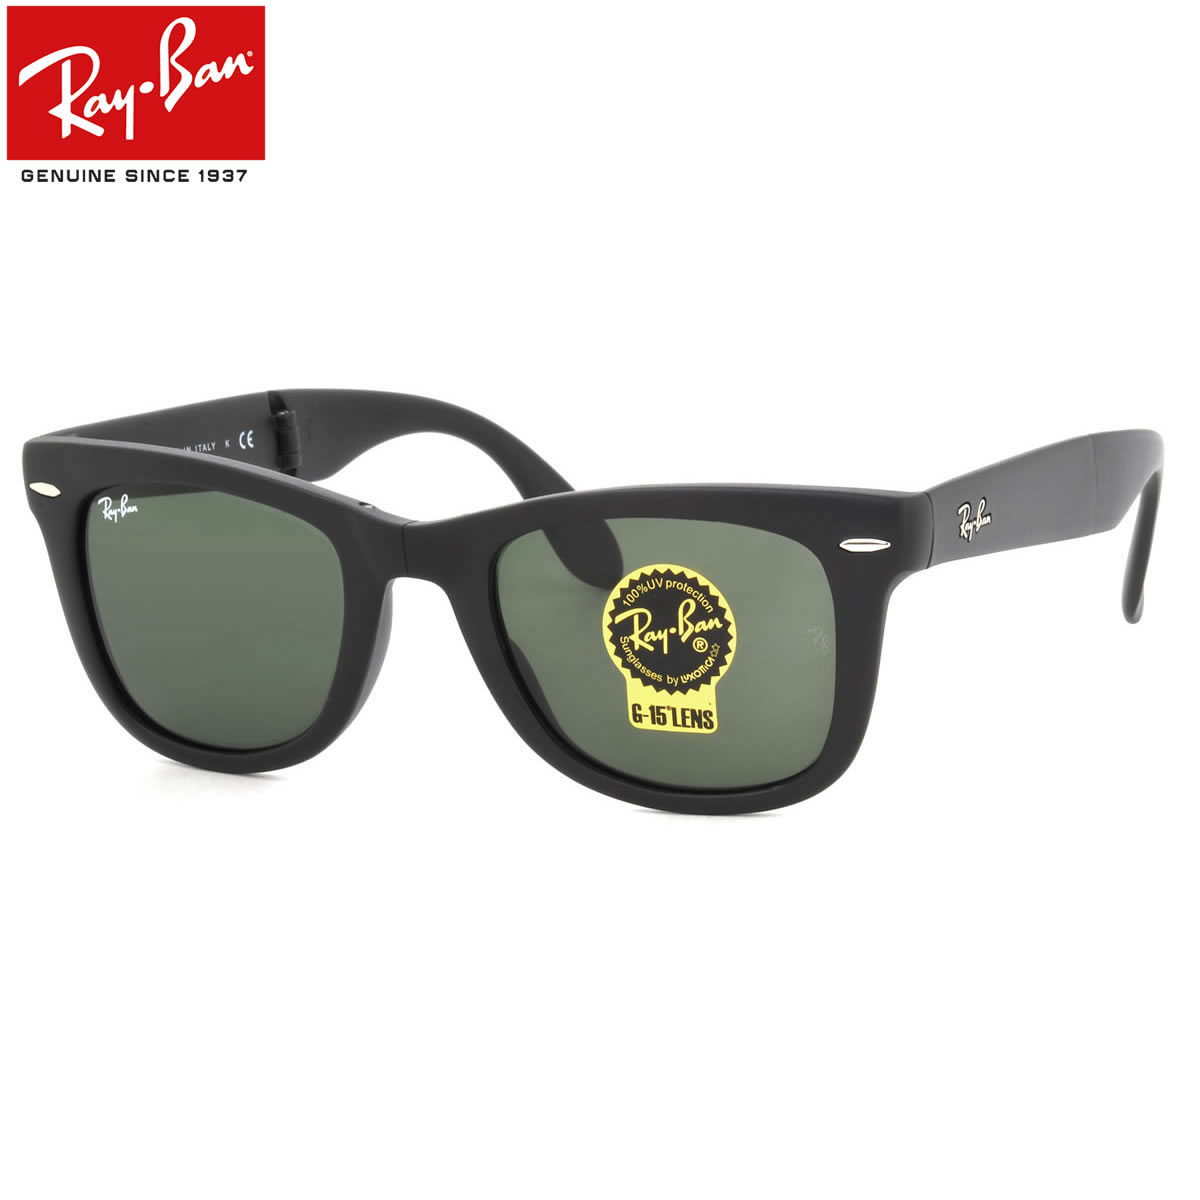 f55bedede1 It is a foldable folding type of one of the most popular models way Farrar  now. In pronominal existence way Farrar WAYFARER of Ray-Ban